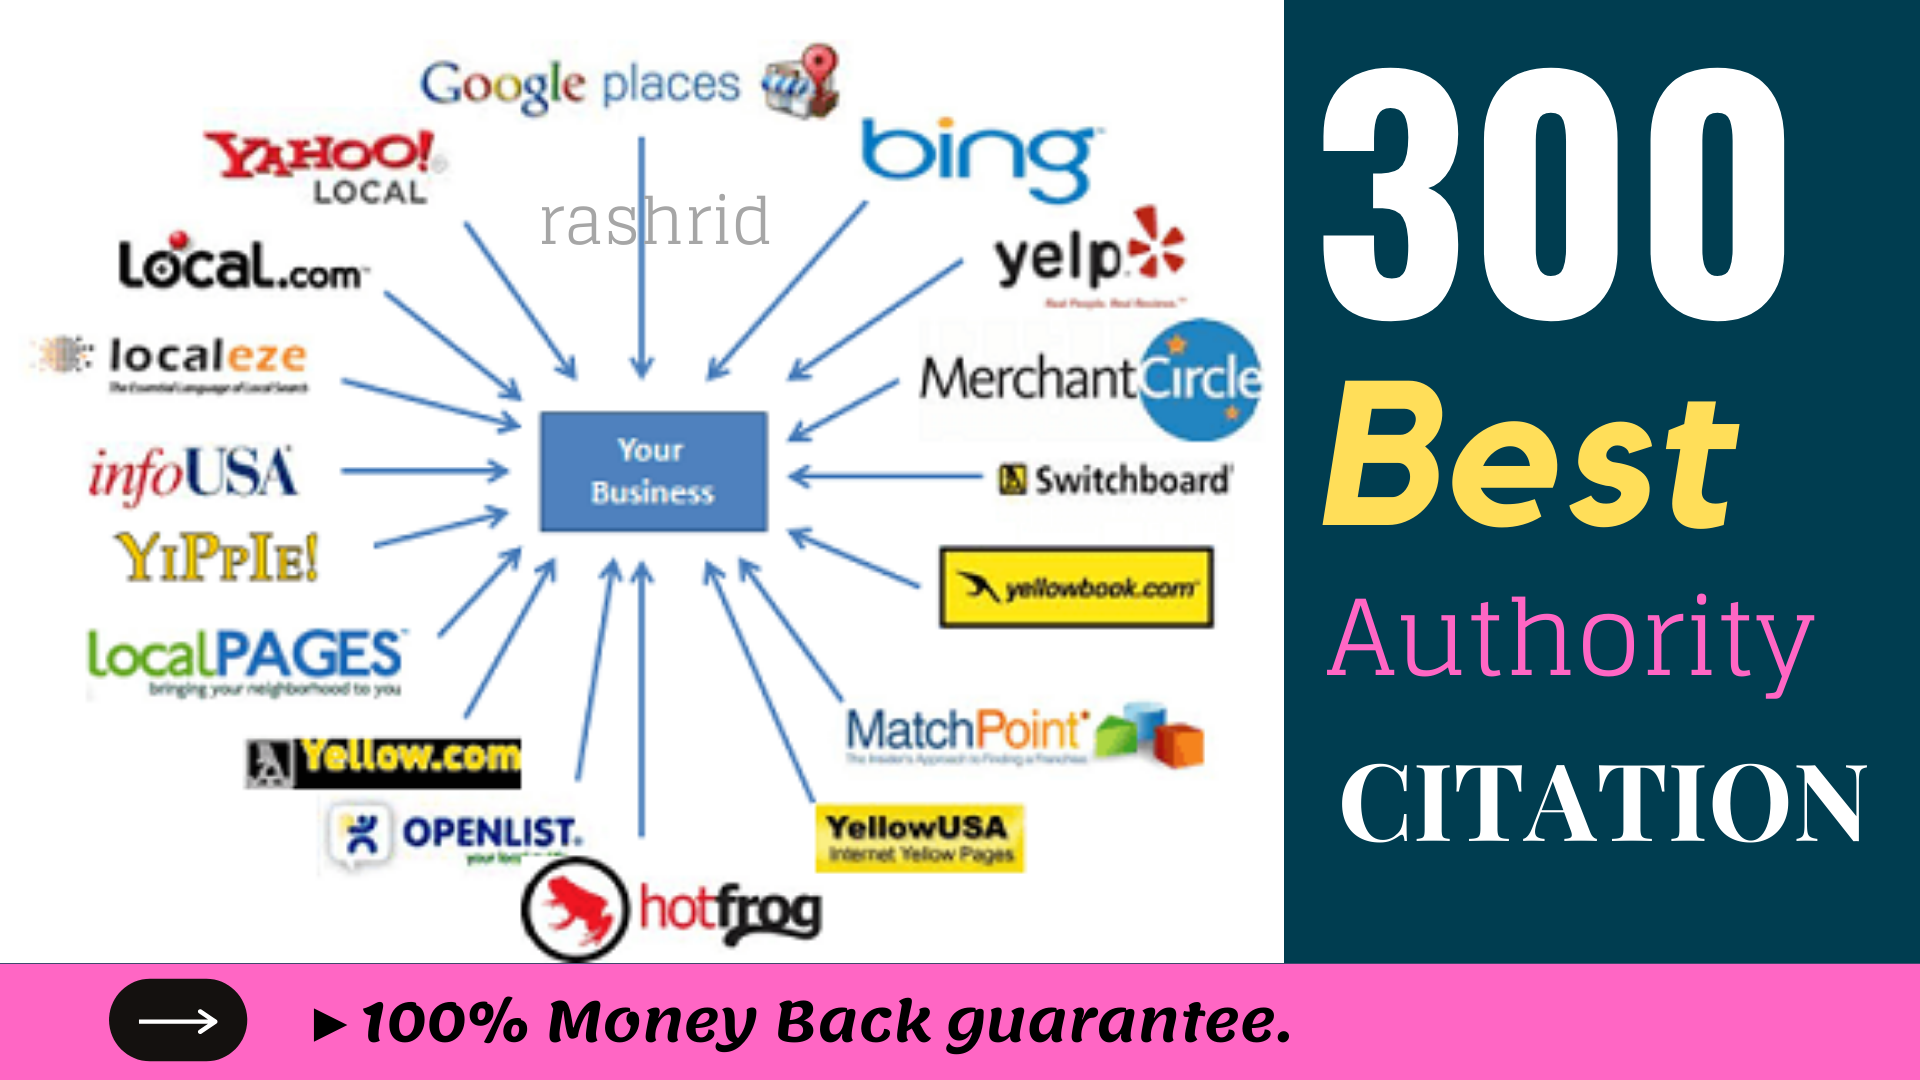 Get Accurate 60 local citations for local listings for USA/Germany/UK/Canada/Australia any business